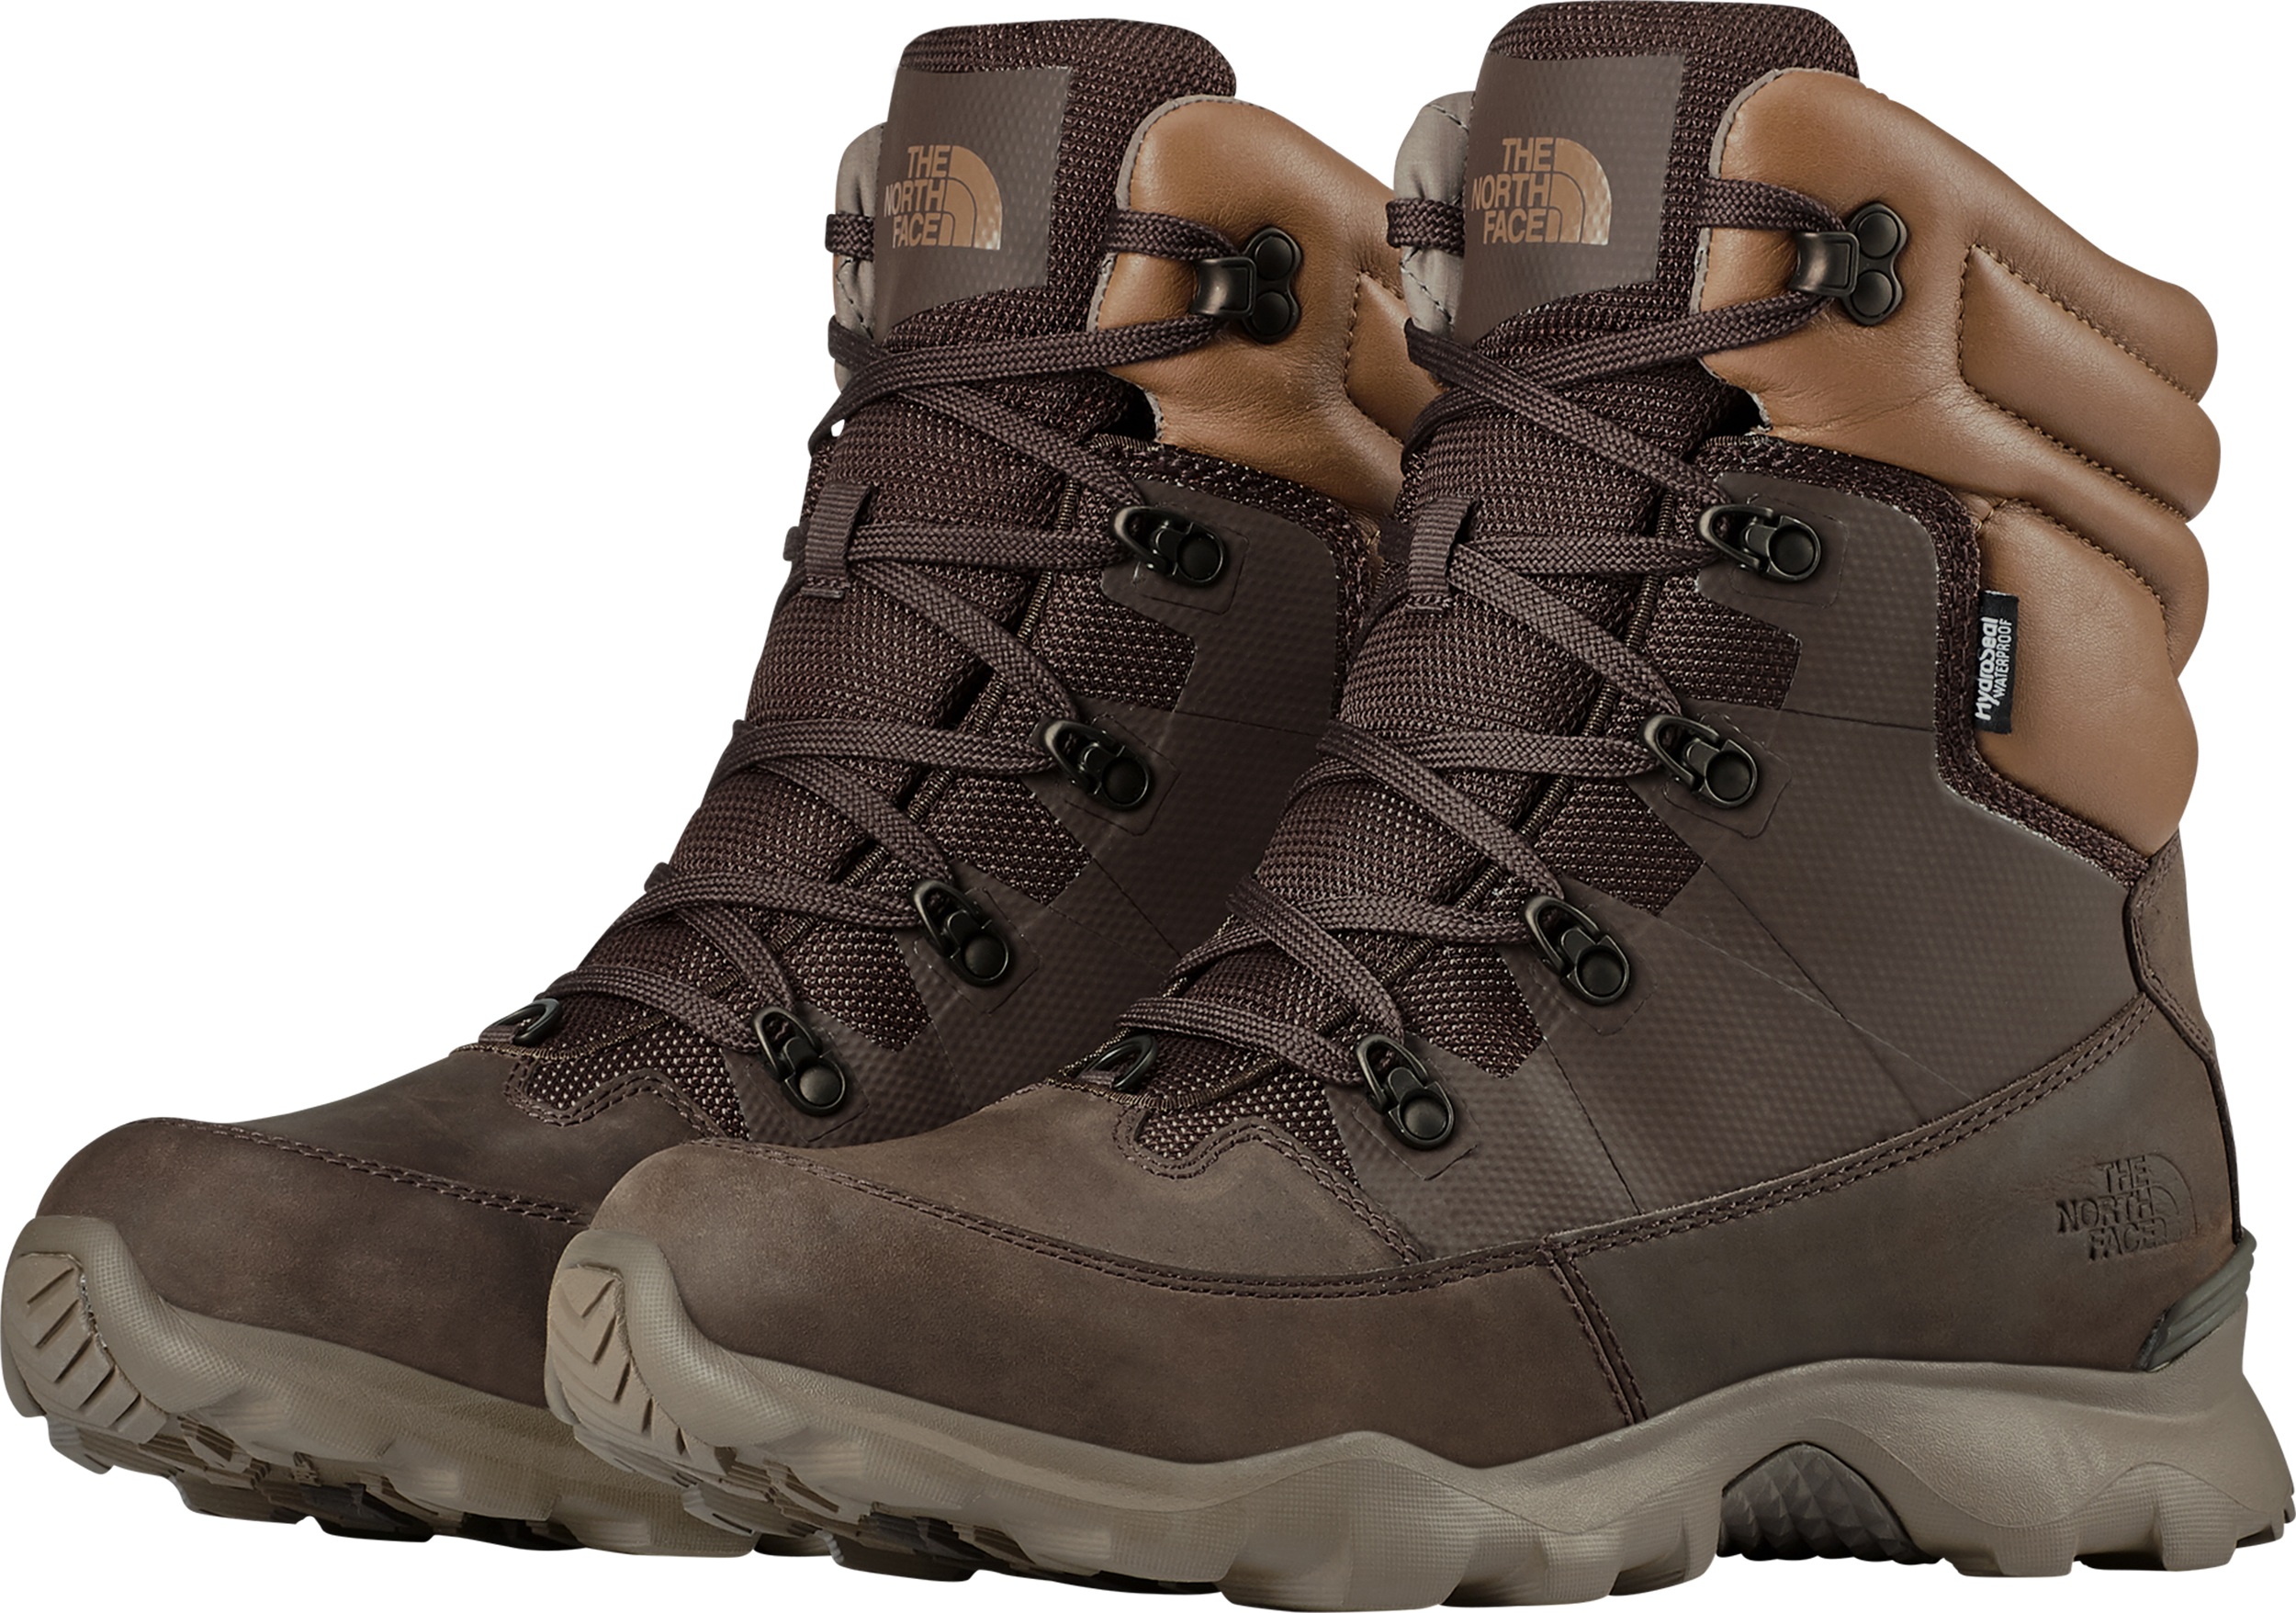 cfa336b4eedd0 The North Face ThermoBall Lifty Waterproof Winter Boots - Men's | MEC